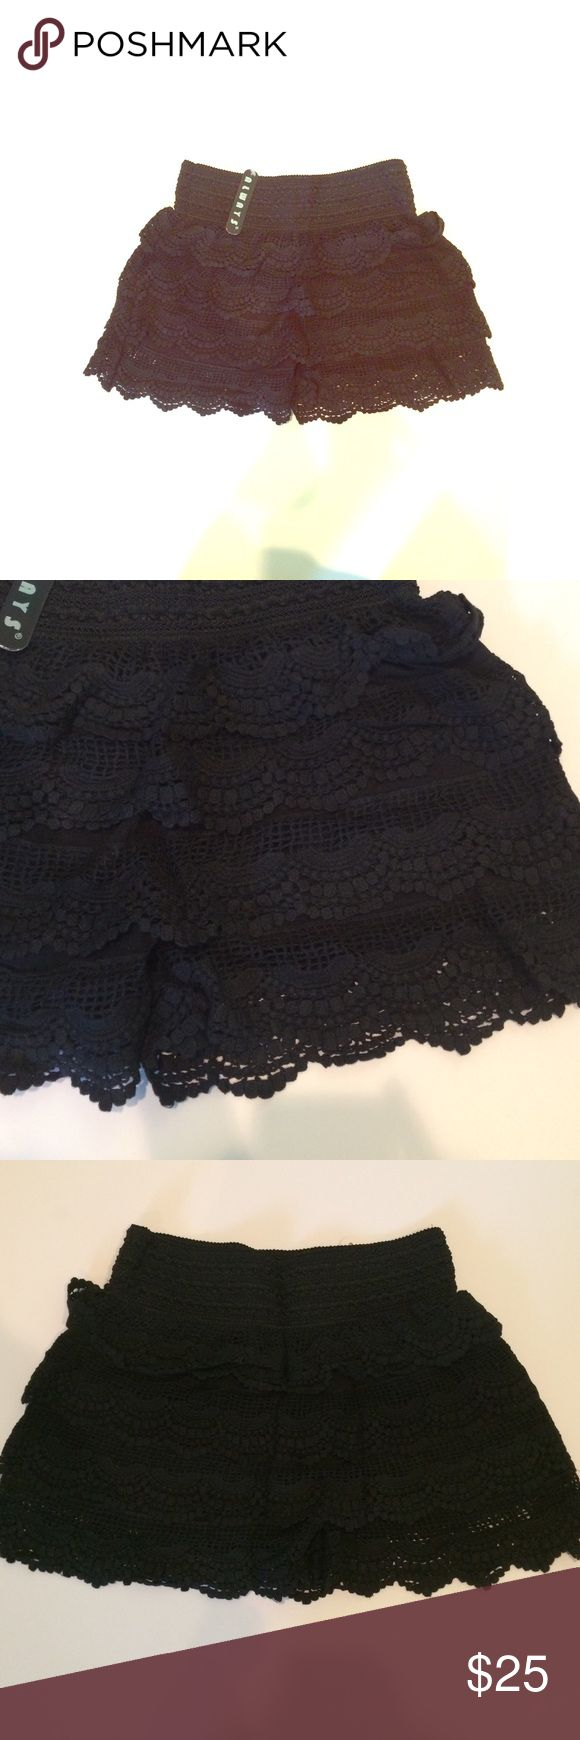 Black Crochet Shorts! Brand New! Never worn! Can be worn with almost anything! Shorts